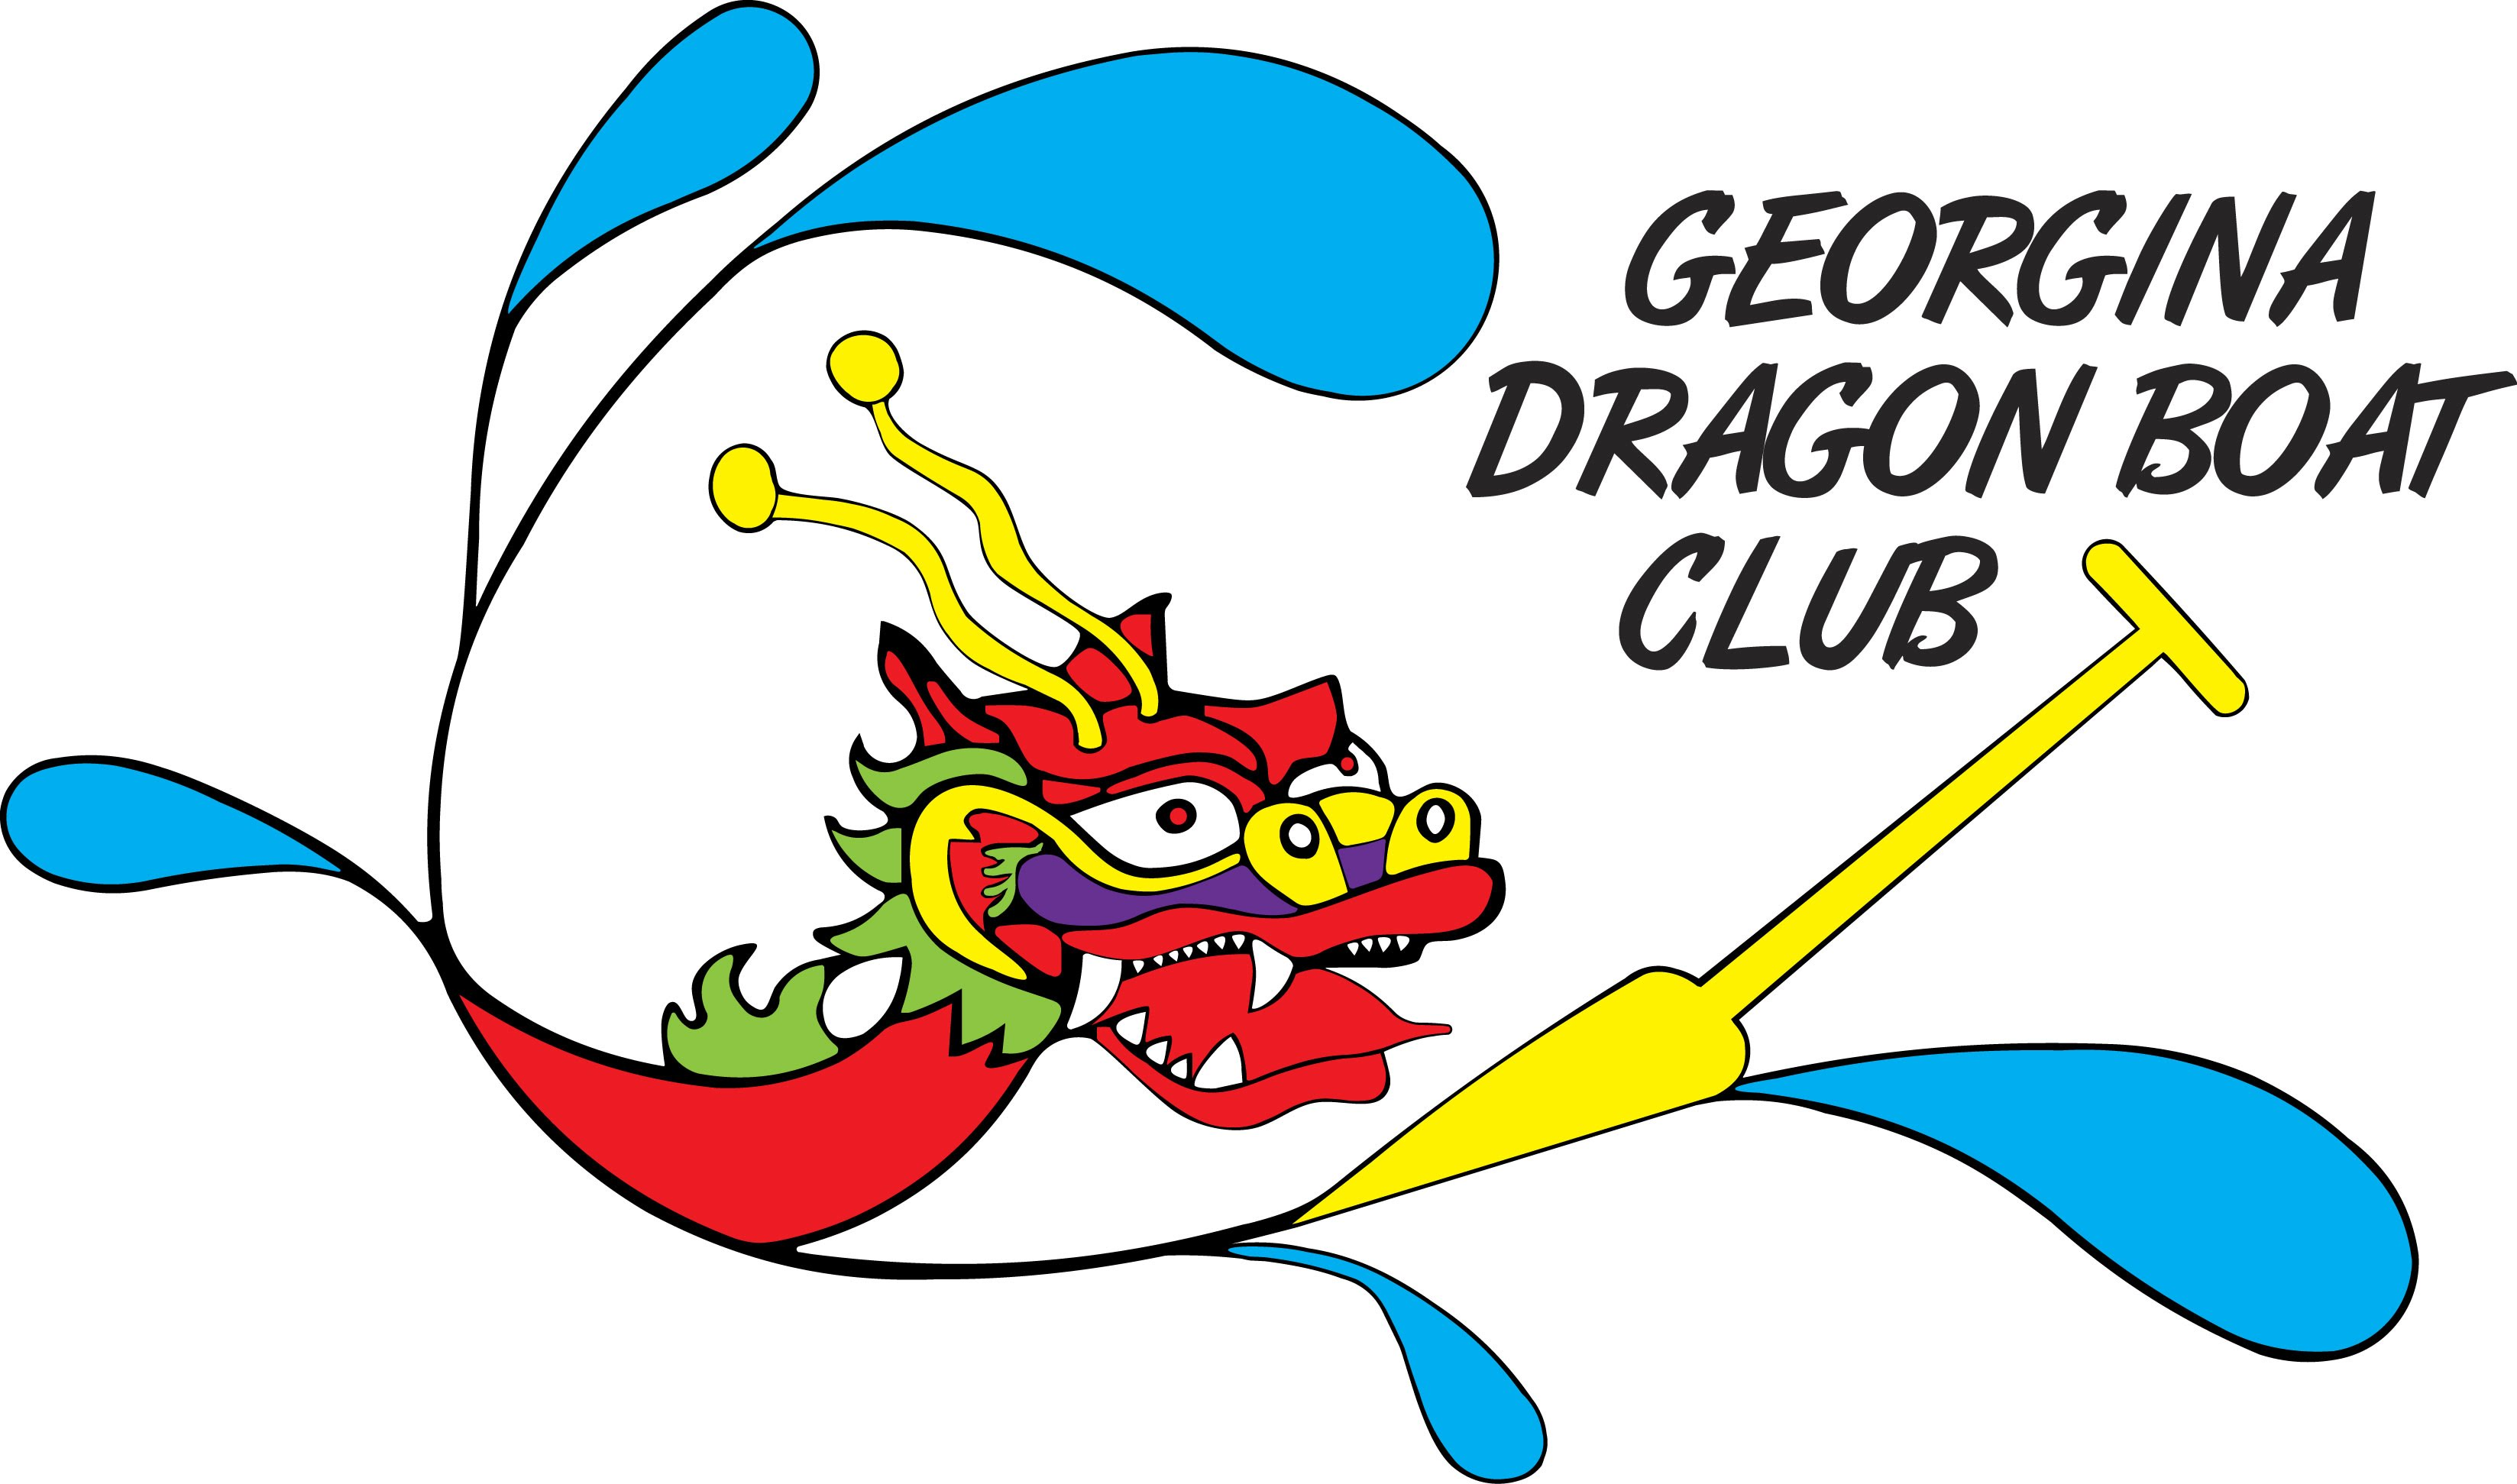 Georgina Dragon Boat Club